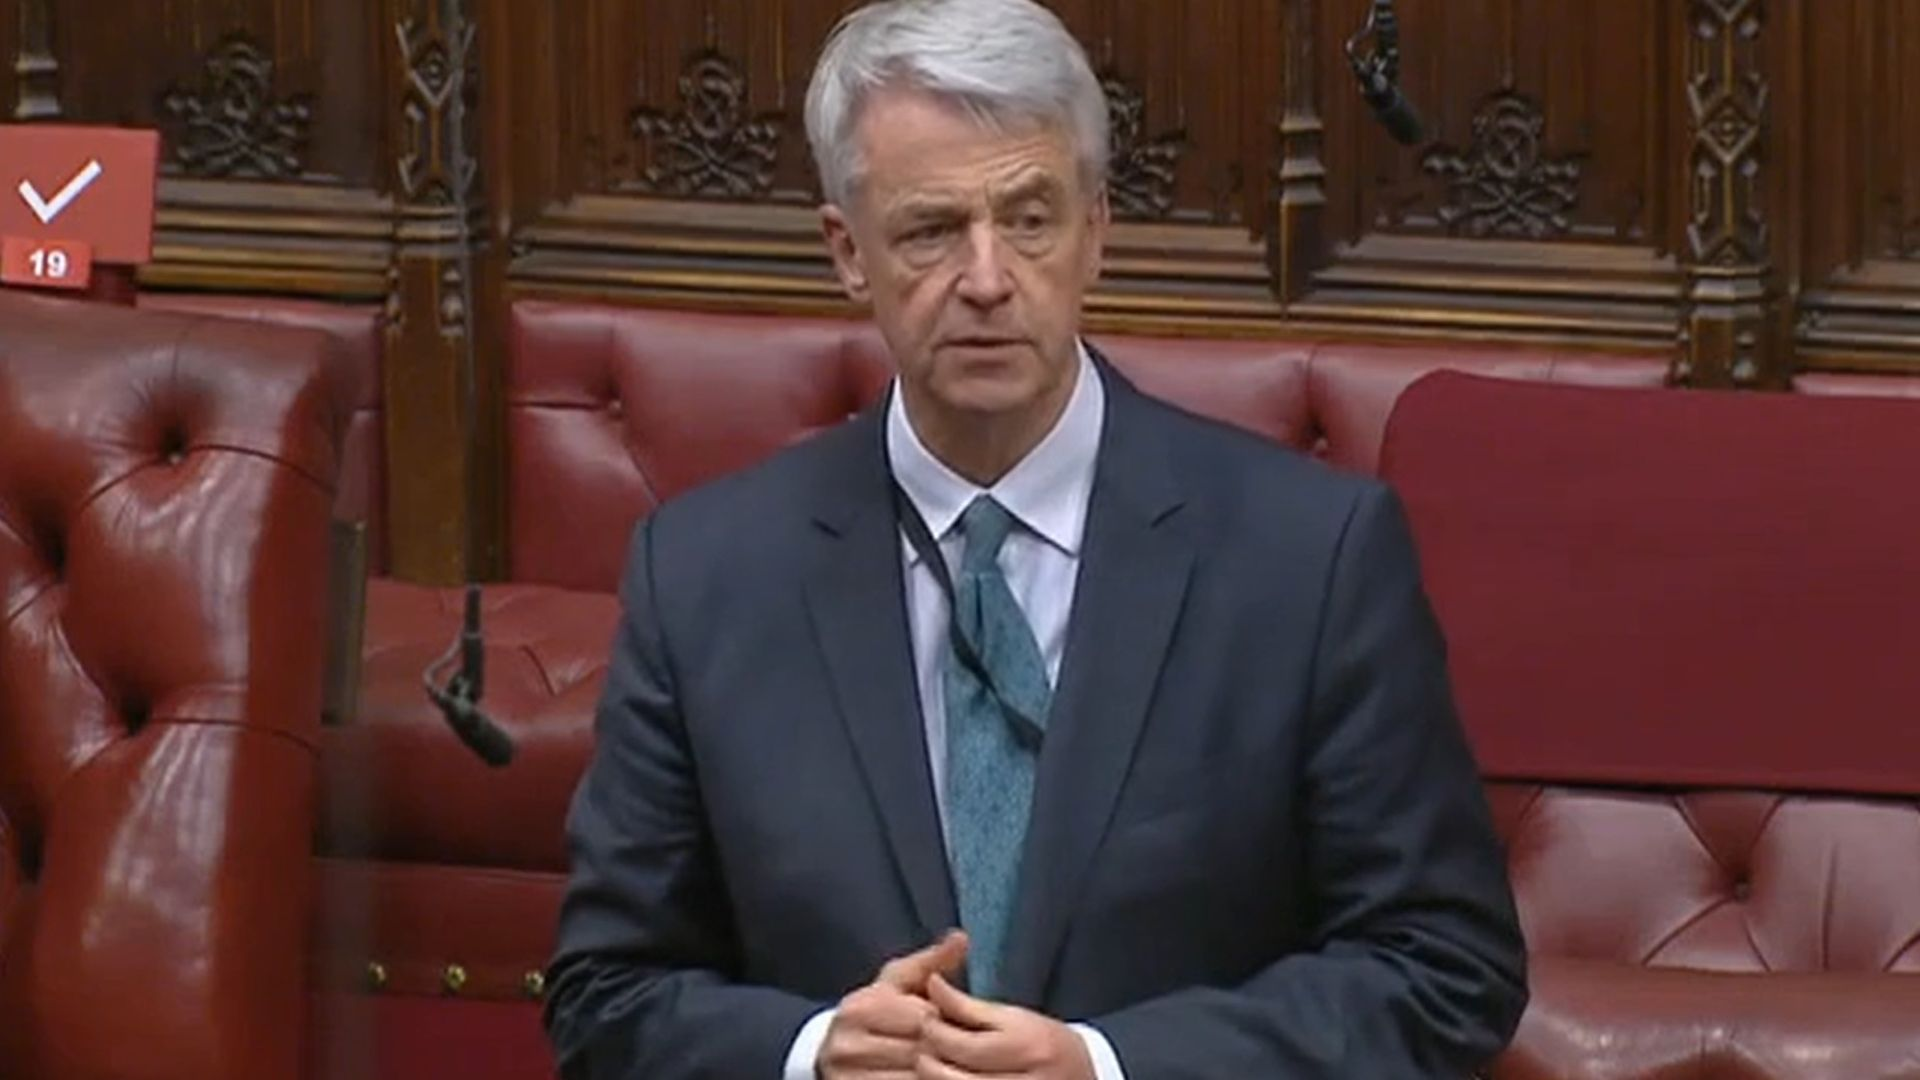 Andrew Lansley in the House of Lords - Credit: Parliament Live